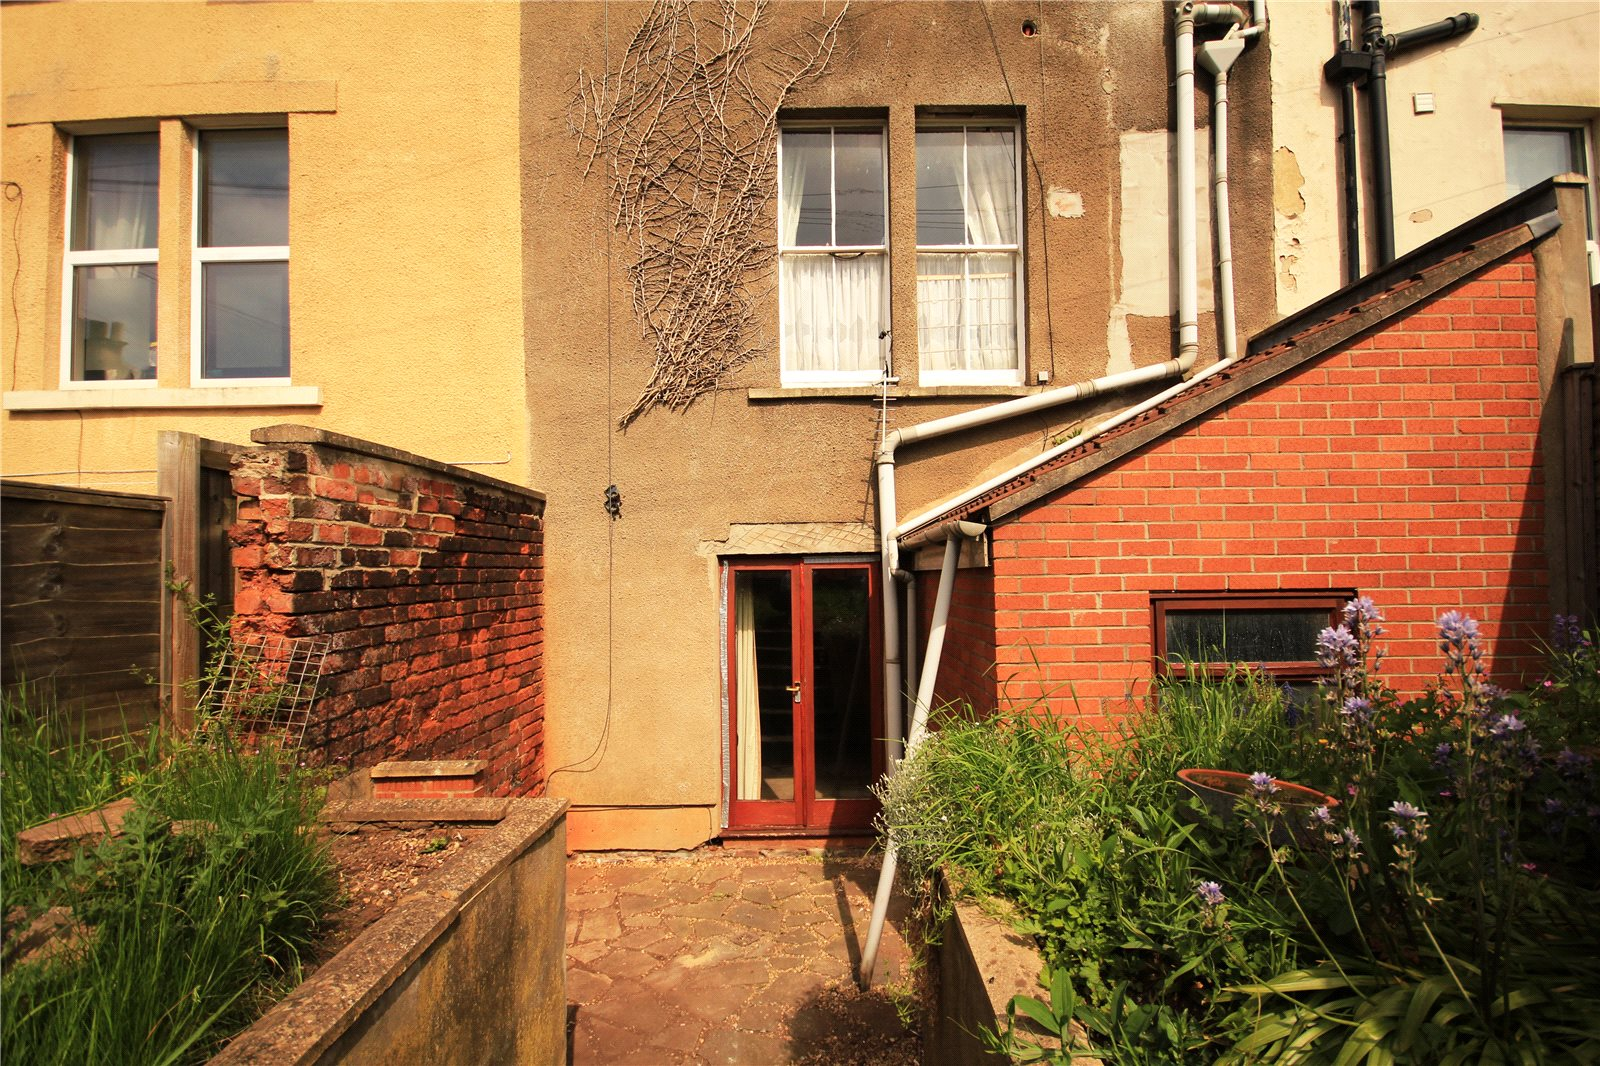 Cj Hole Downend 1 Bedroom Flat For Sale In Fishponds Road